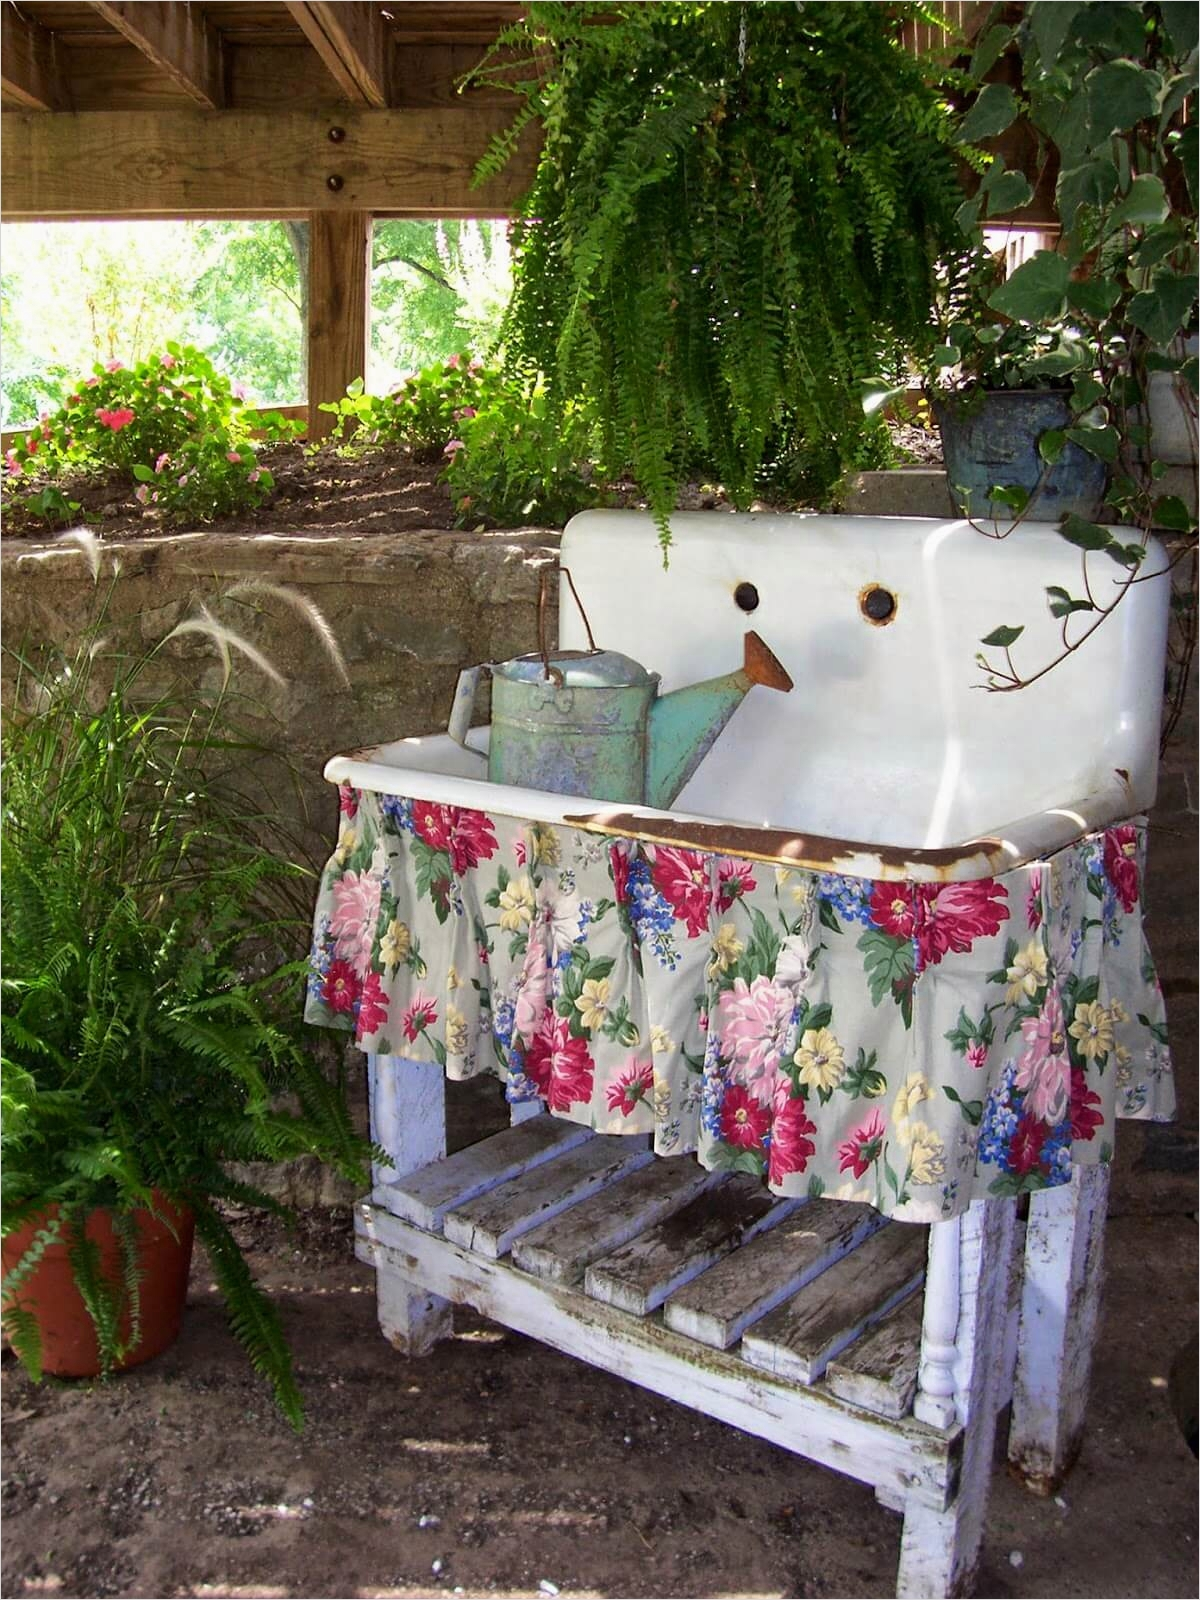 42 Beautiful Vintage Yard Decorating Ideas 98 34 Best Vintage Garden Decor Ideas and Designs for 2017 4